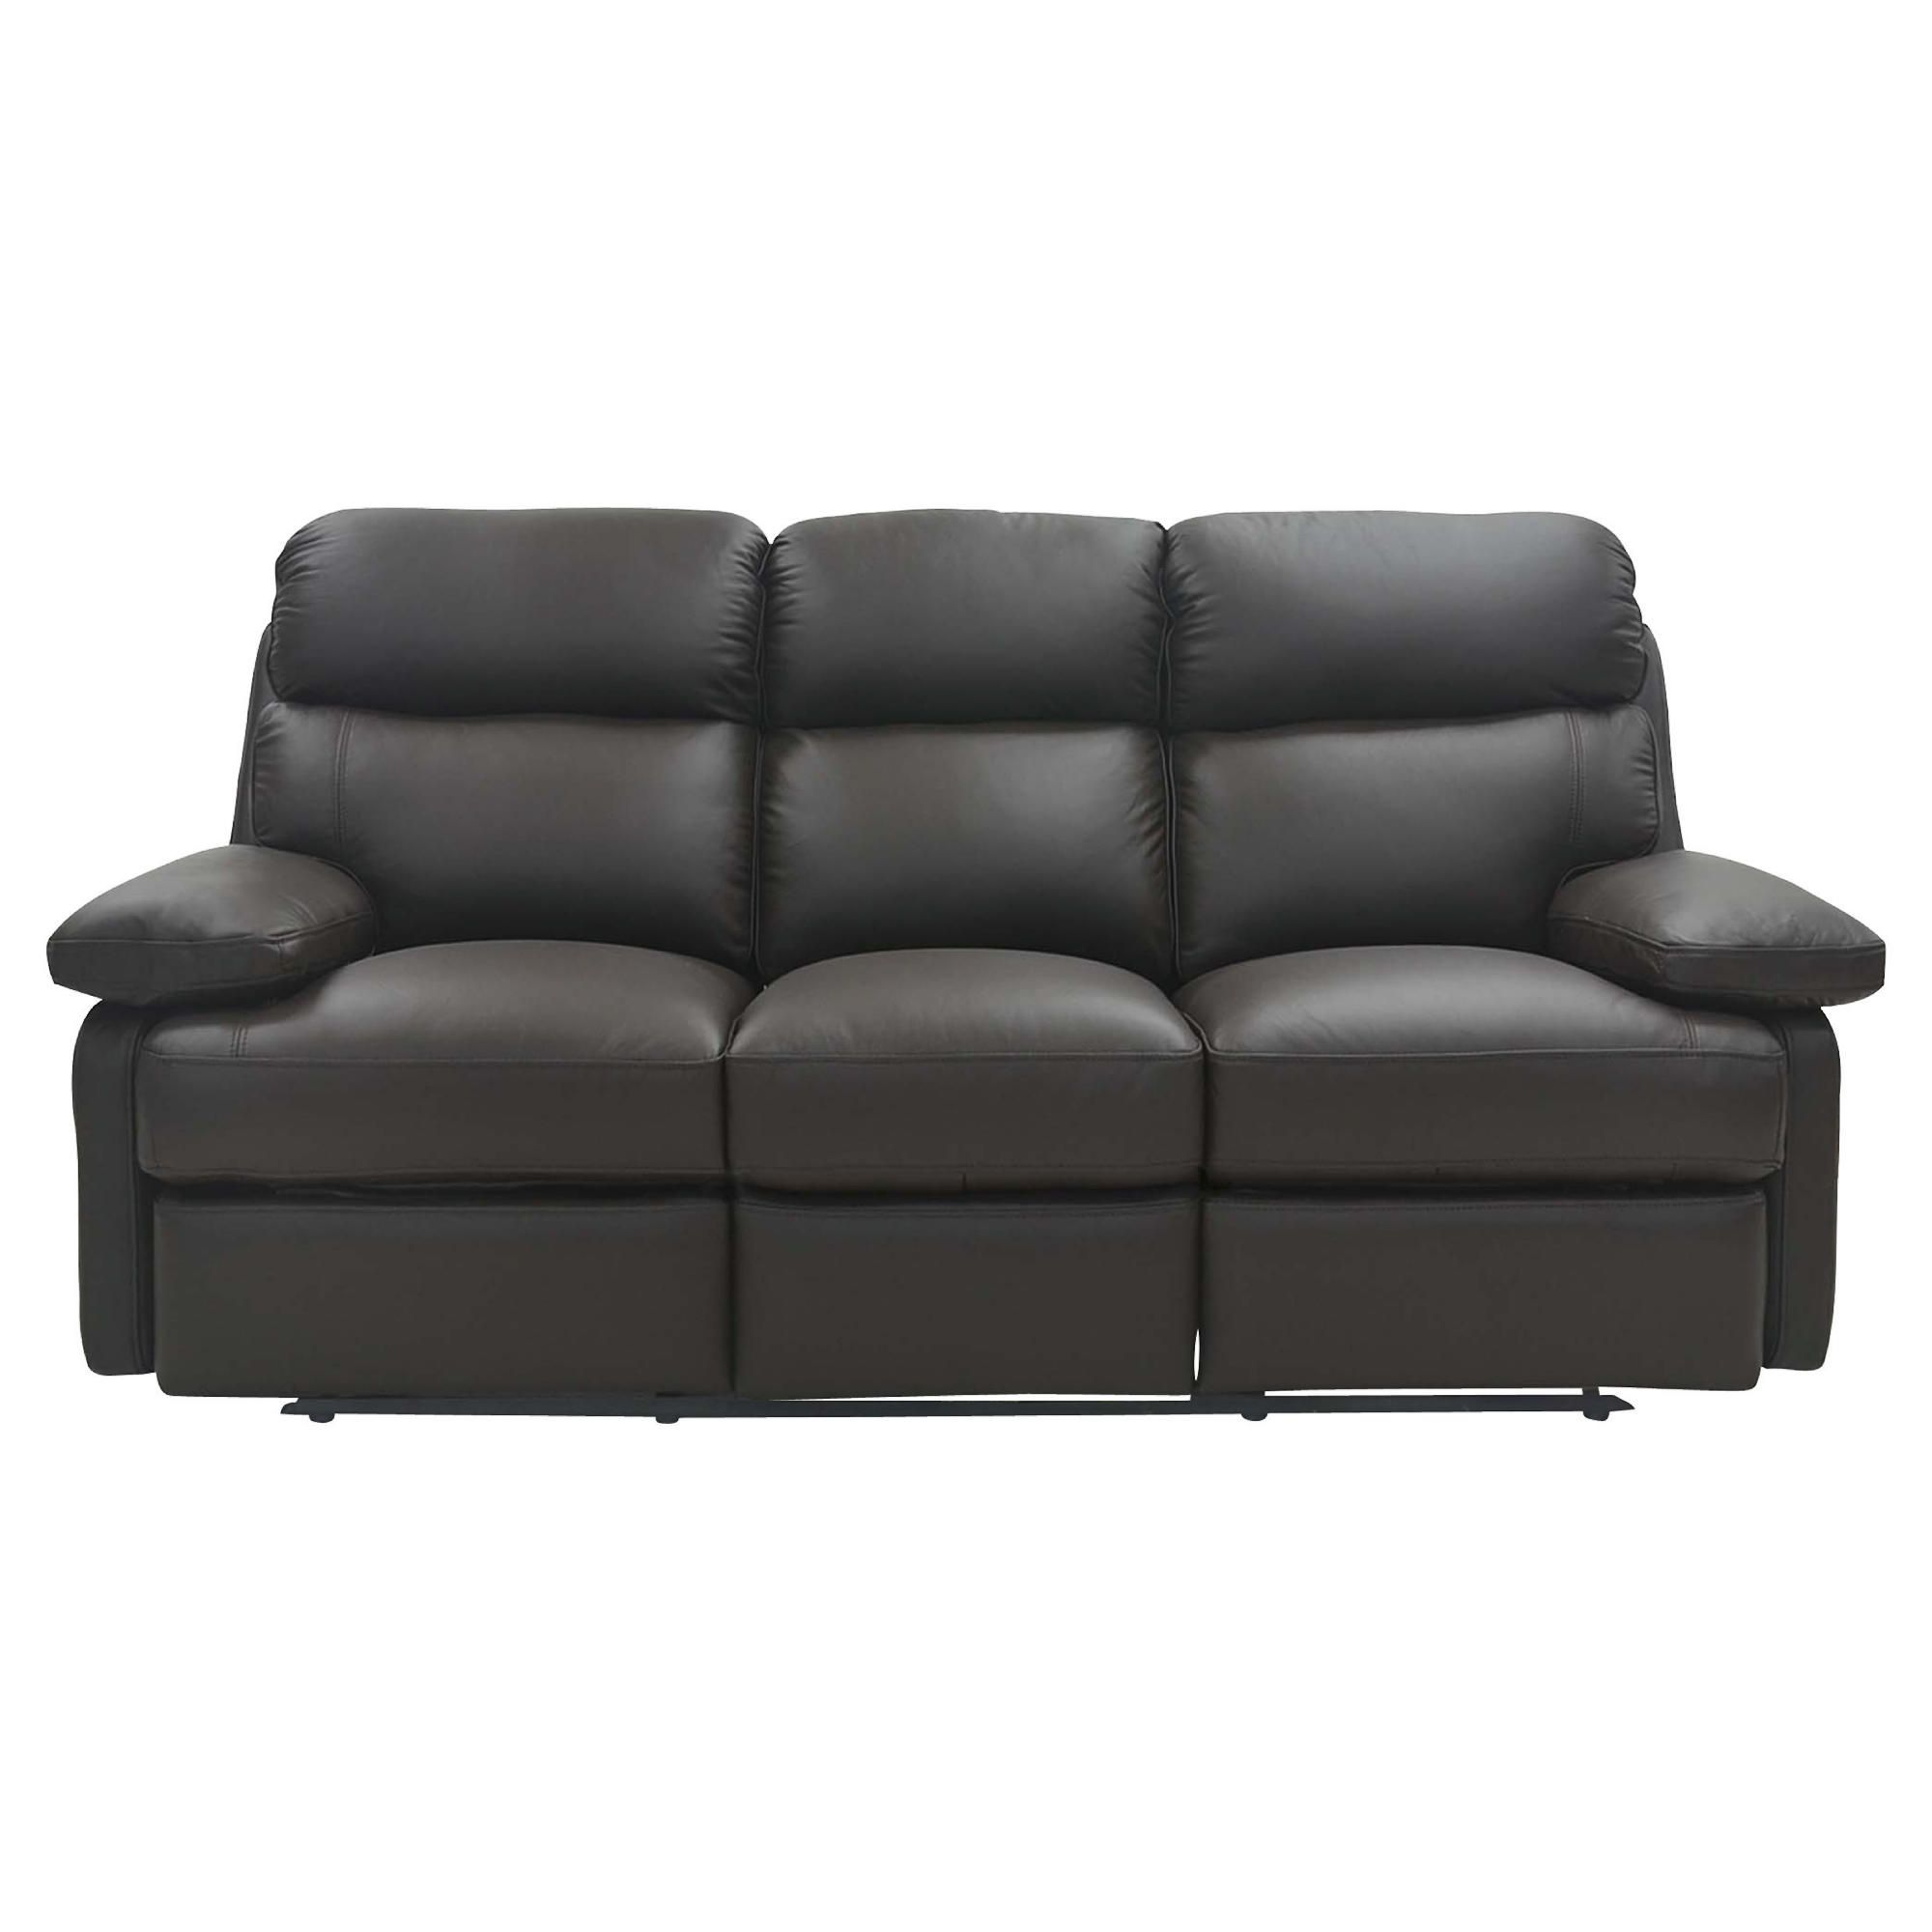 Cordova Leather Large Recliner Sofa Chocolate at Tesco Direct